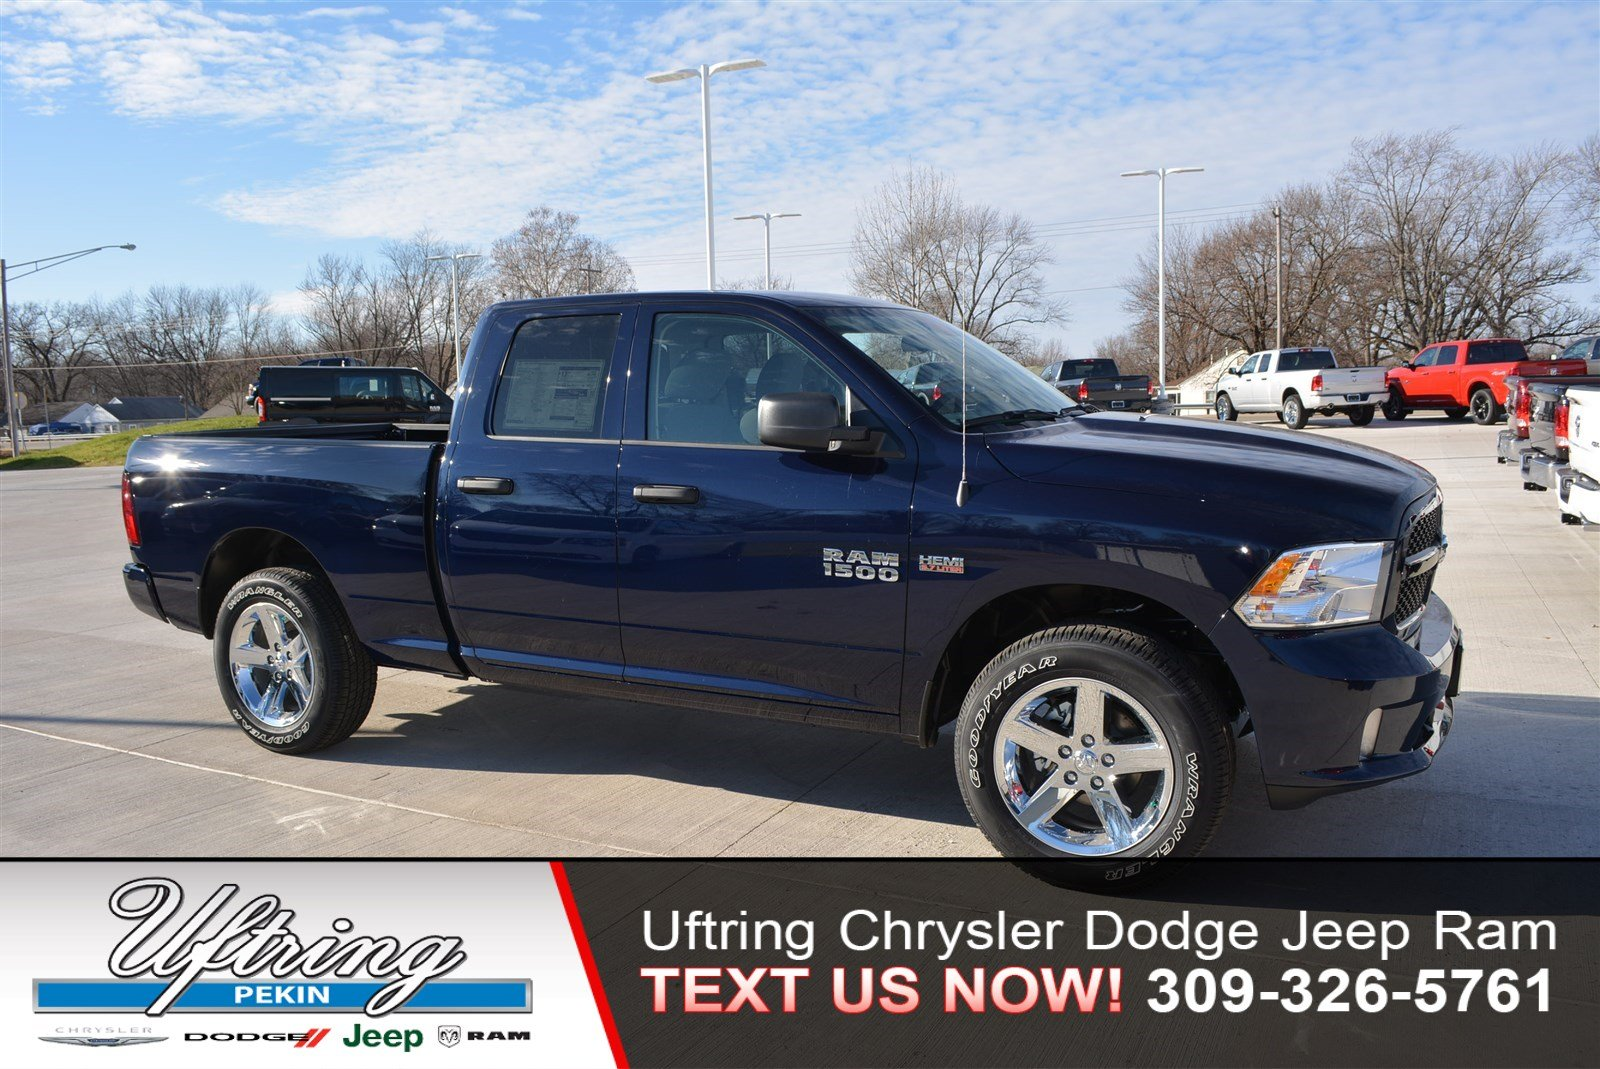 New 2018 RAM 1500 Express Quad Cab in Pekin #1886204 | Uftring ...